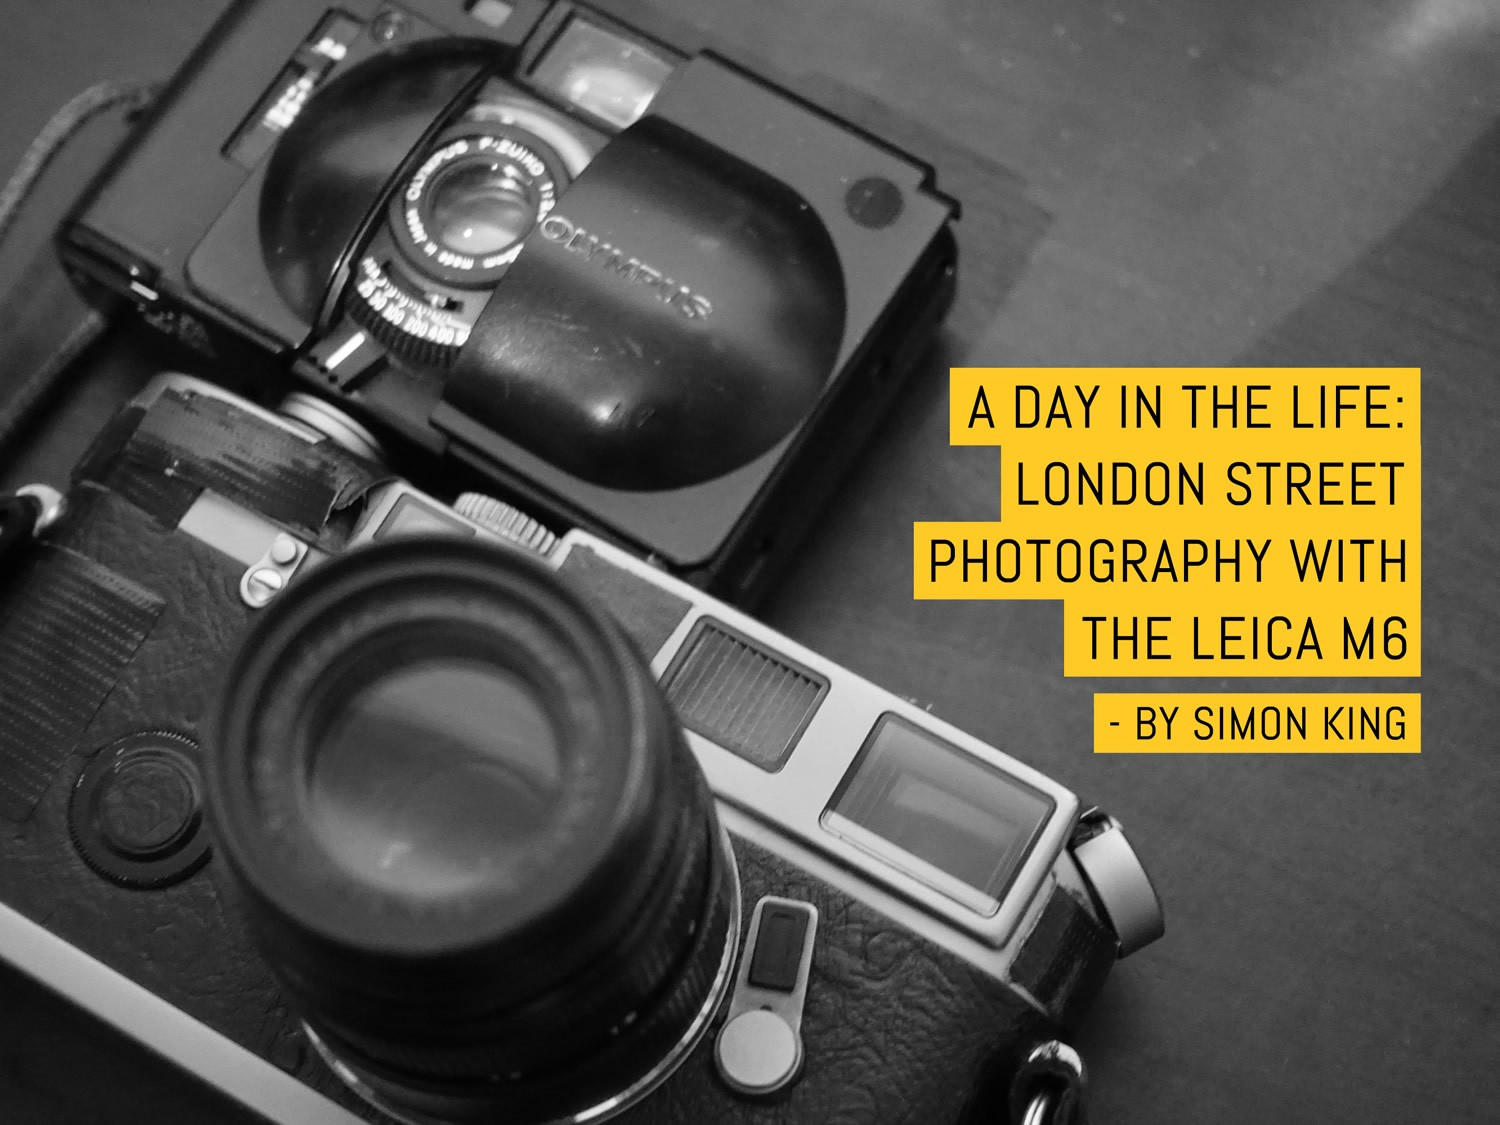 A day in the life: London street photography with the Leica M6 - by Simon King